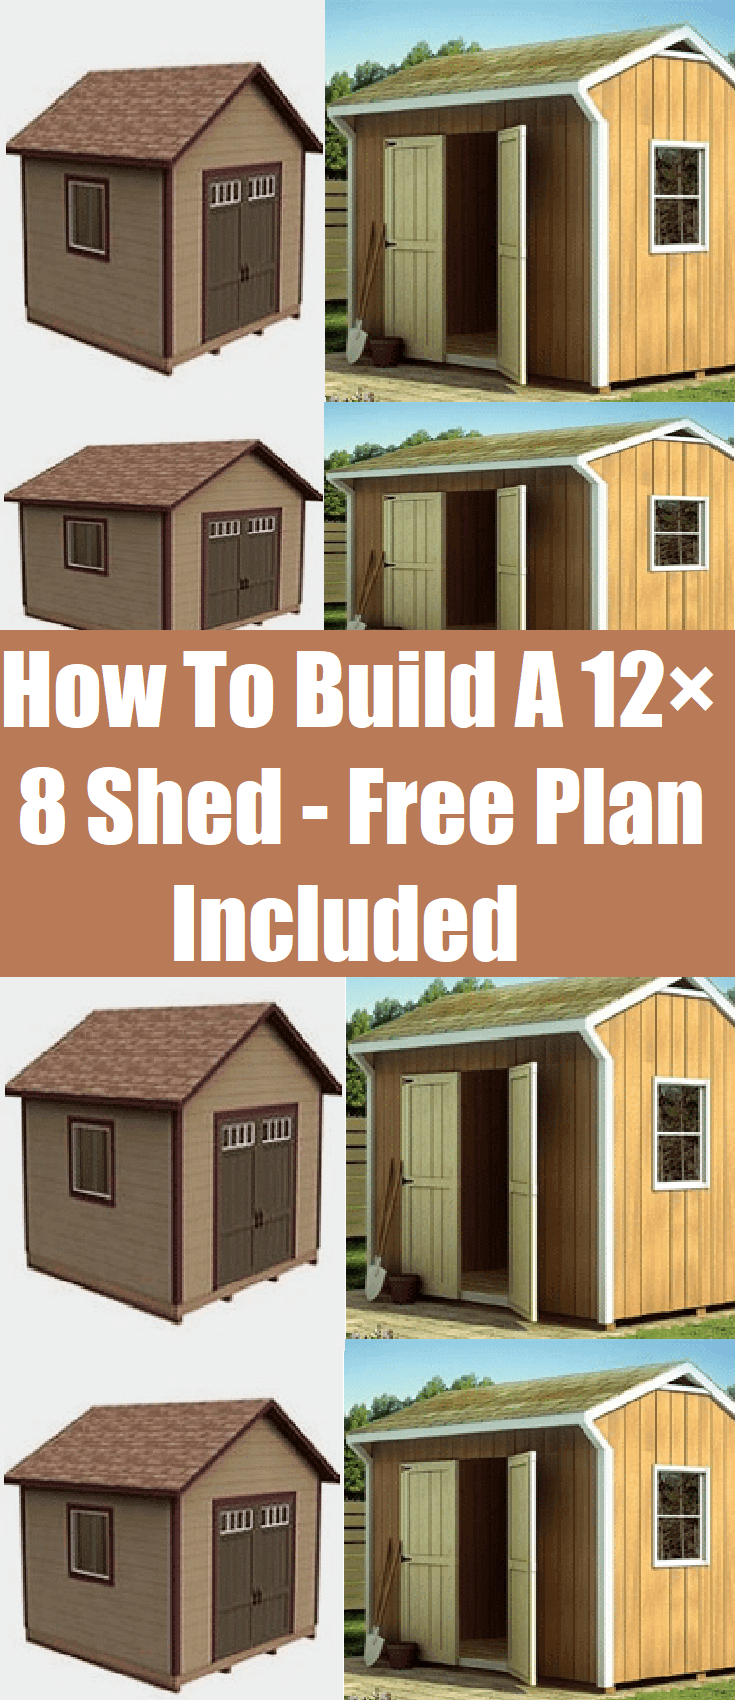 How To Build A 12×8 Shed